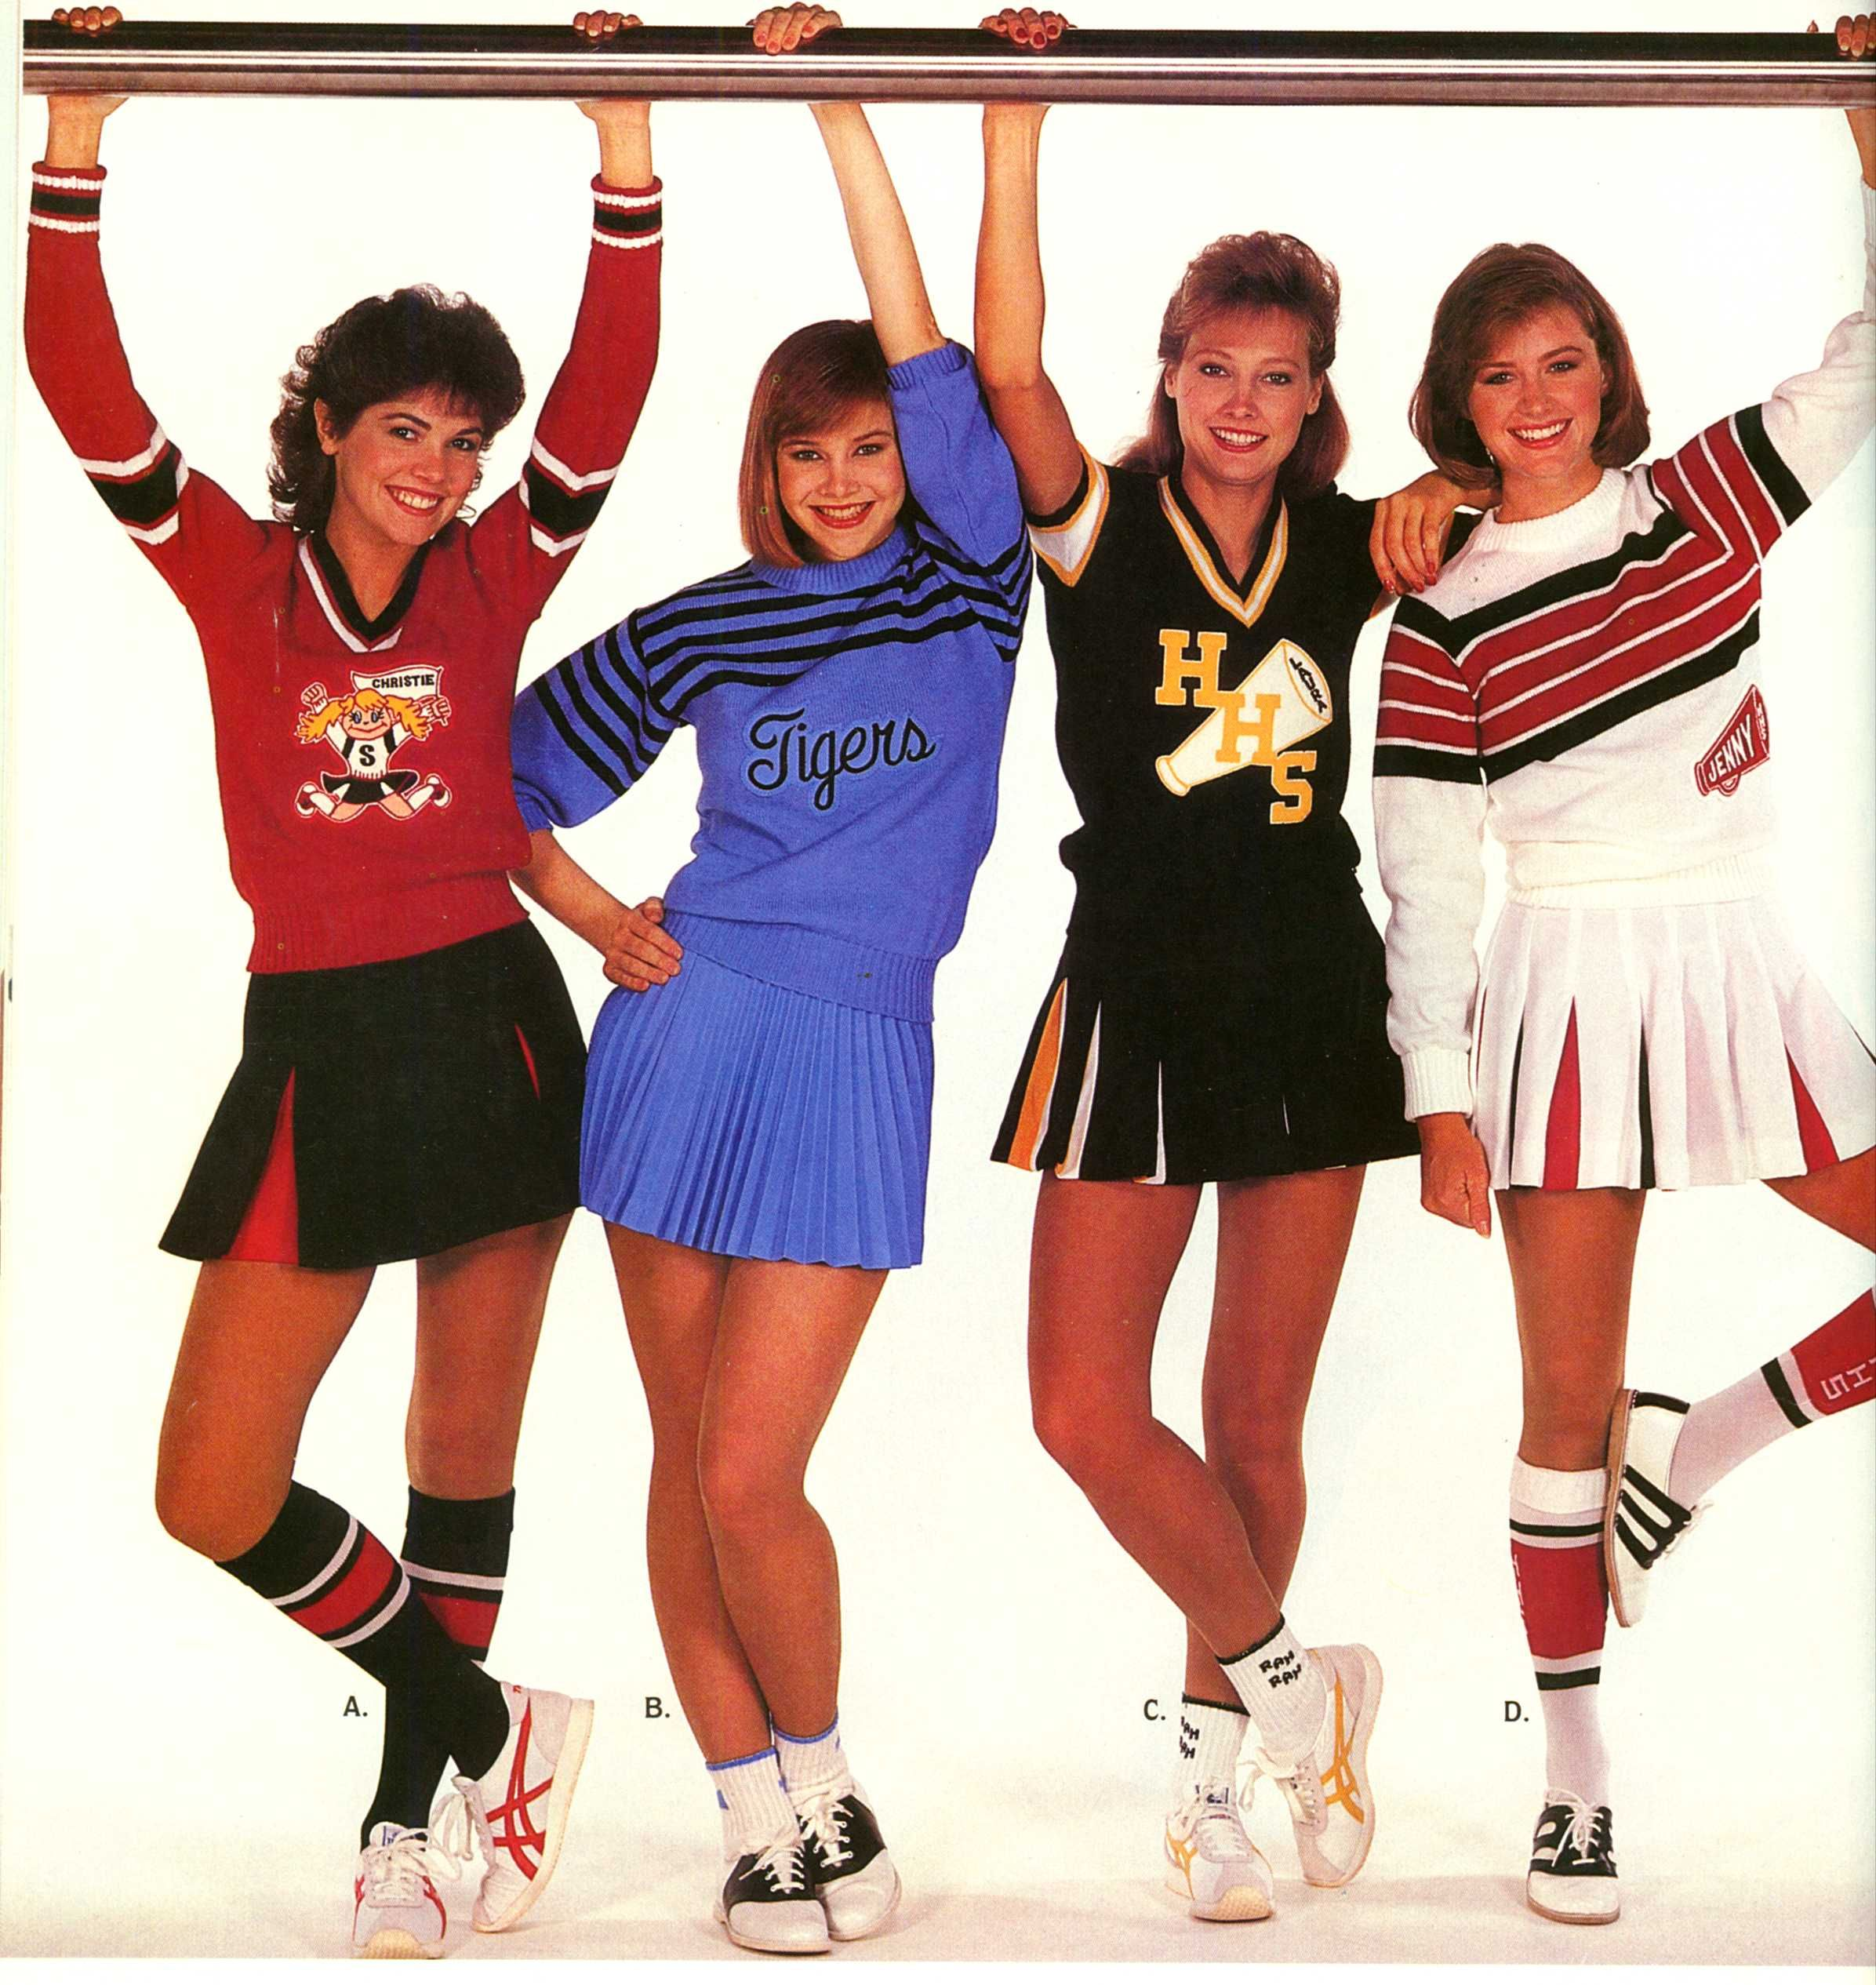 Totally remember this cheer catalog and